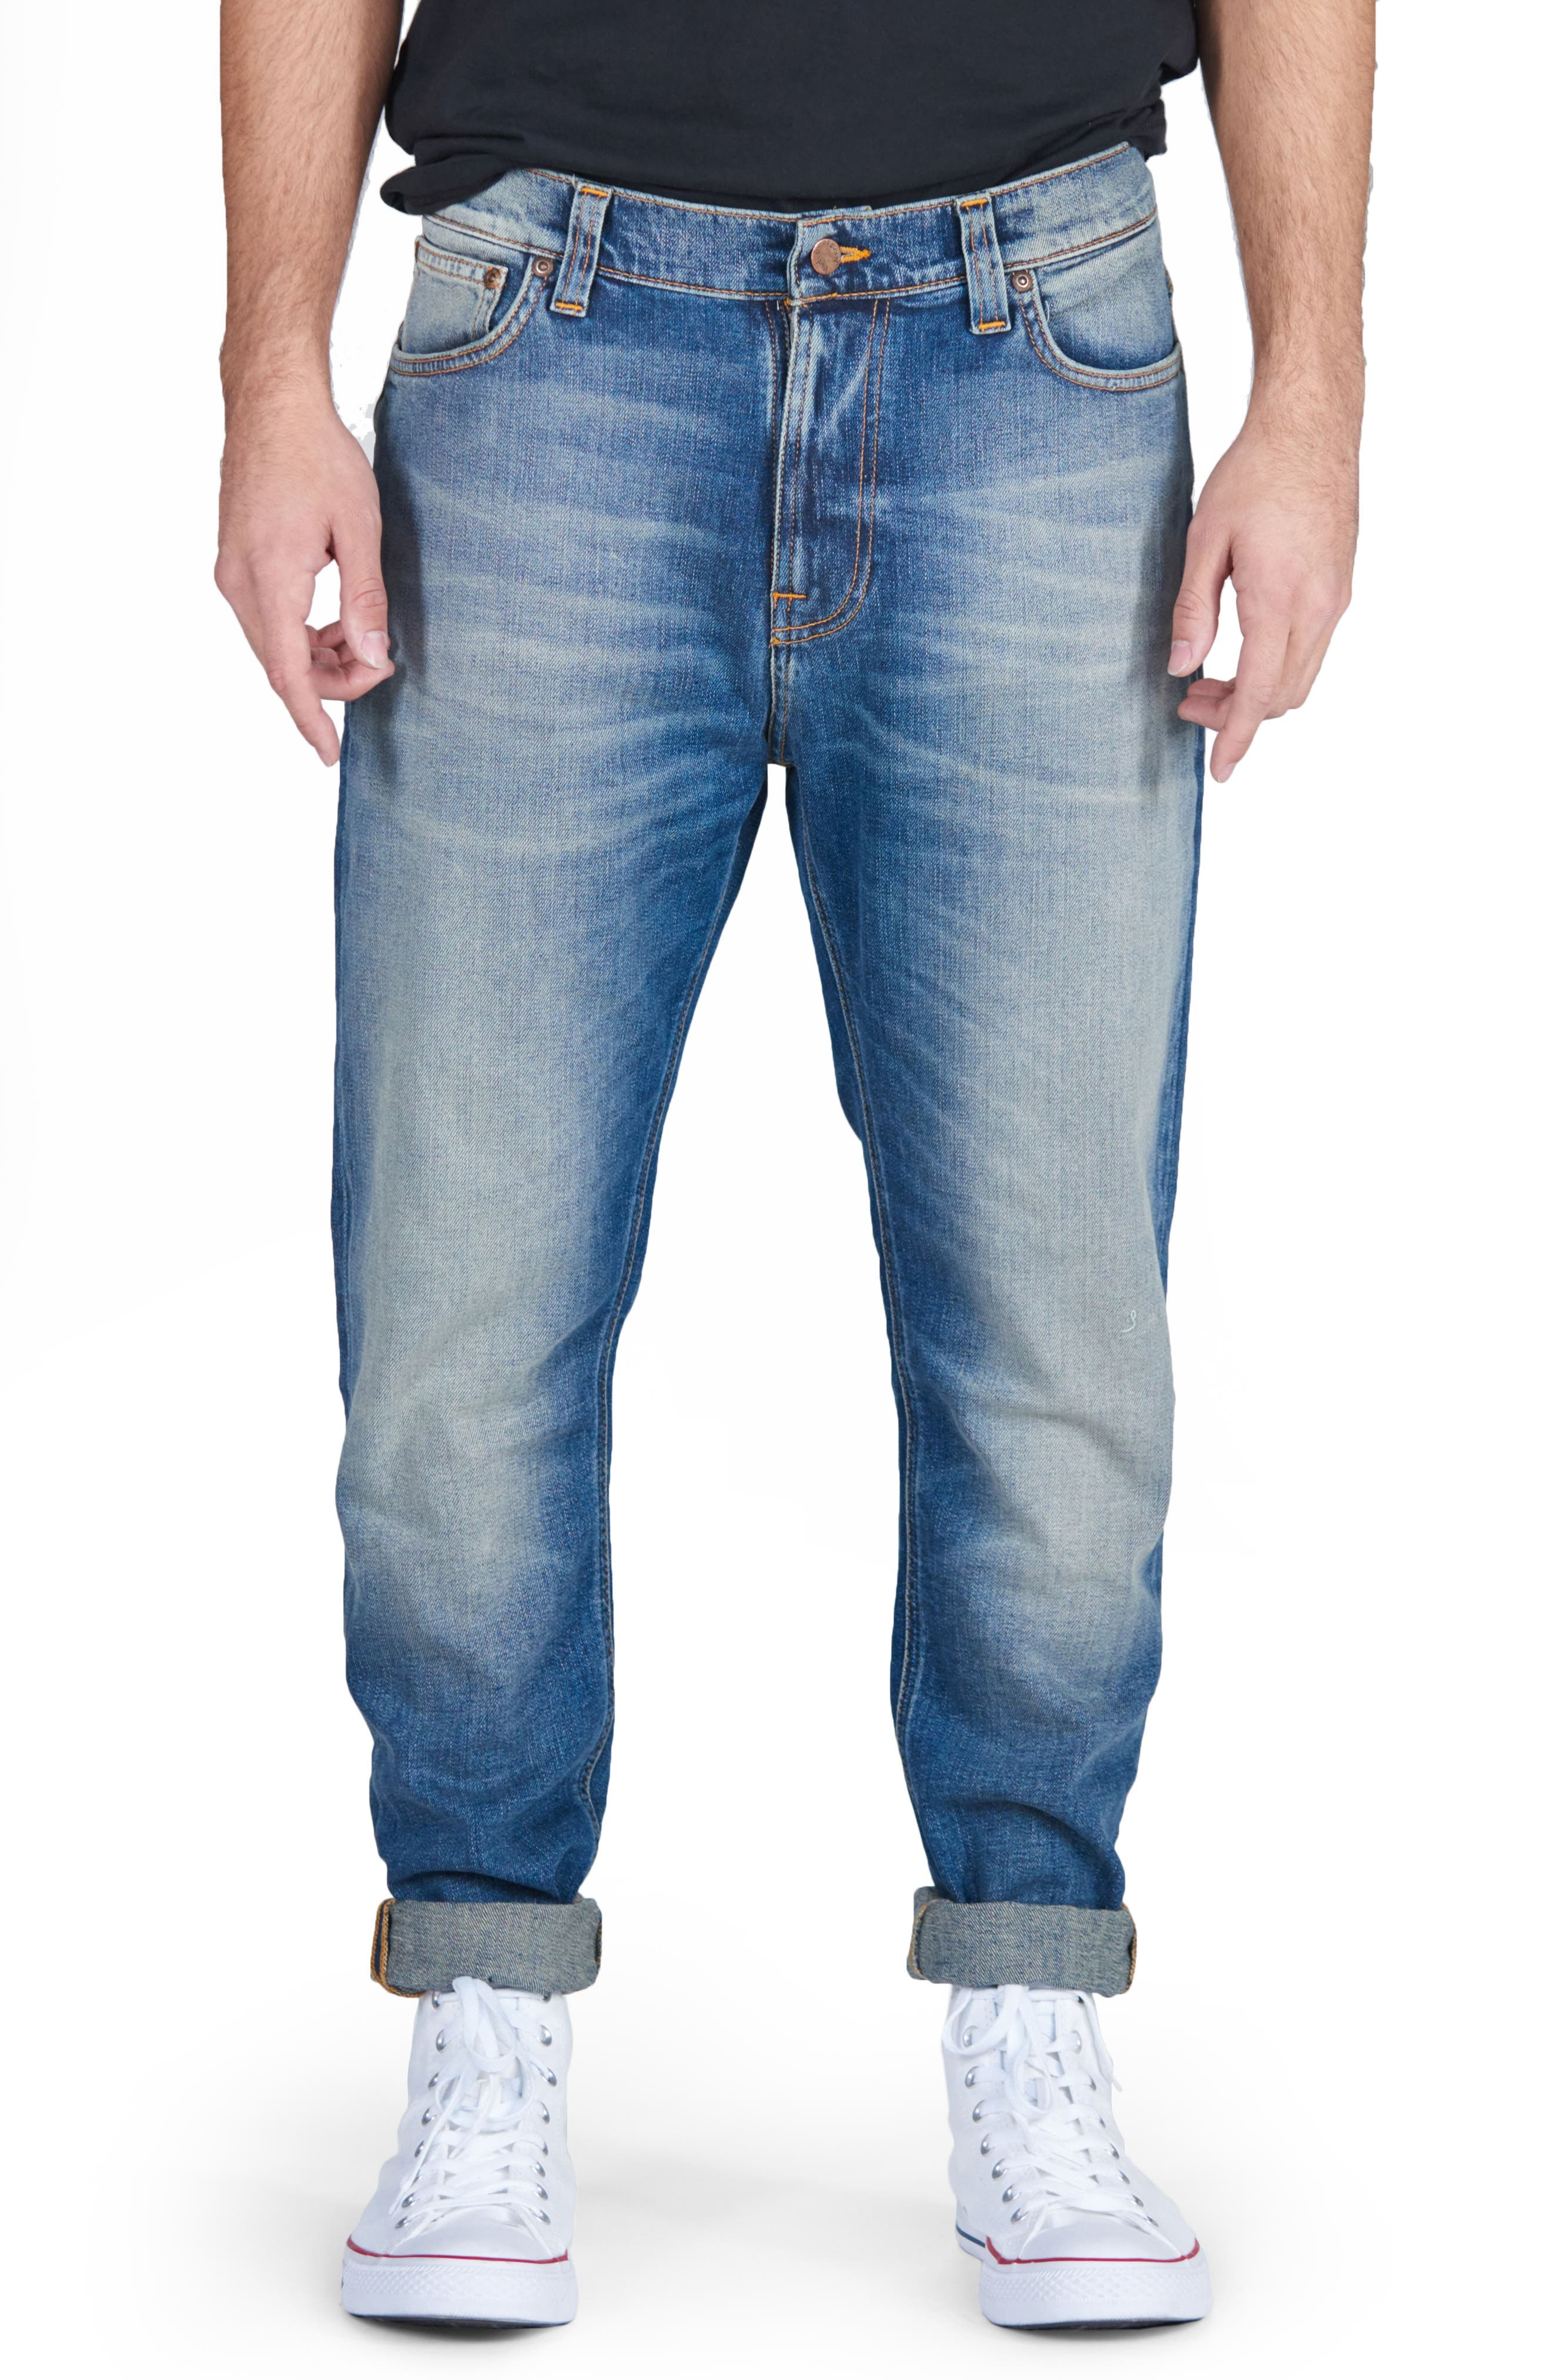 Nudie Jeans Brute Knut Skinny Slouchy Fit Jeans (Blue Hike)